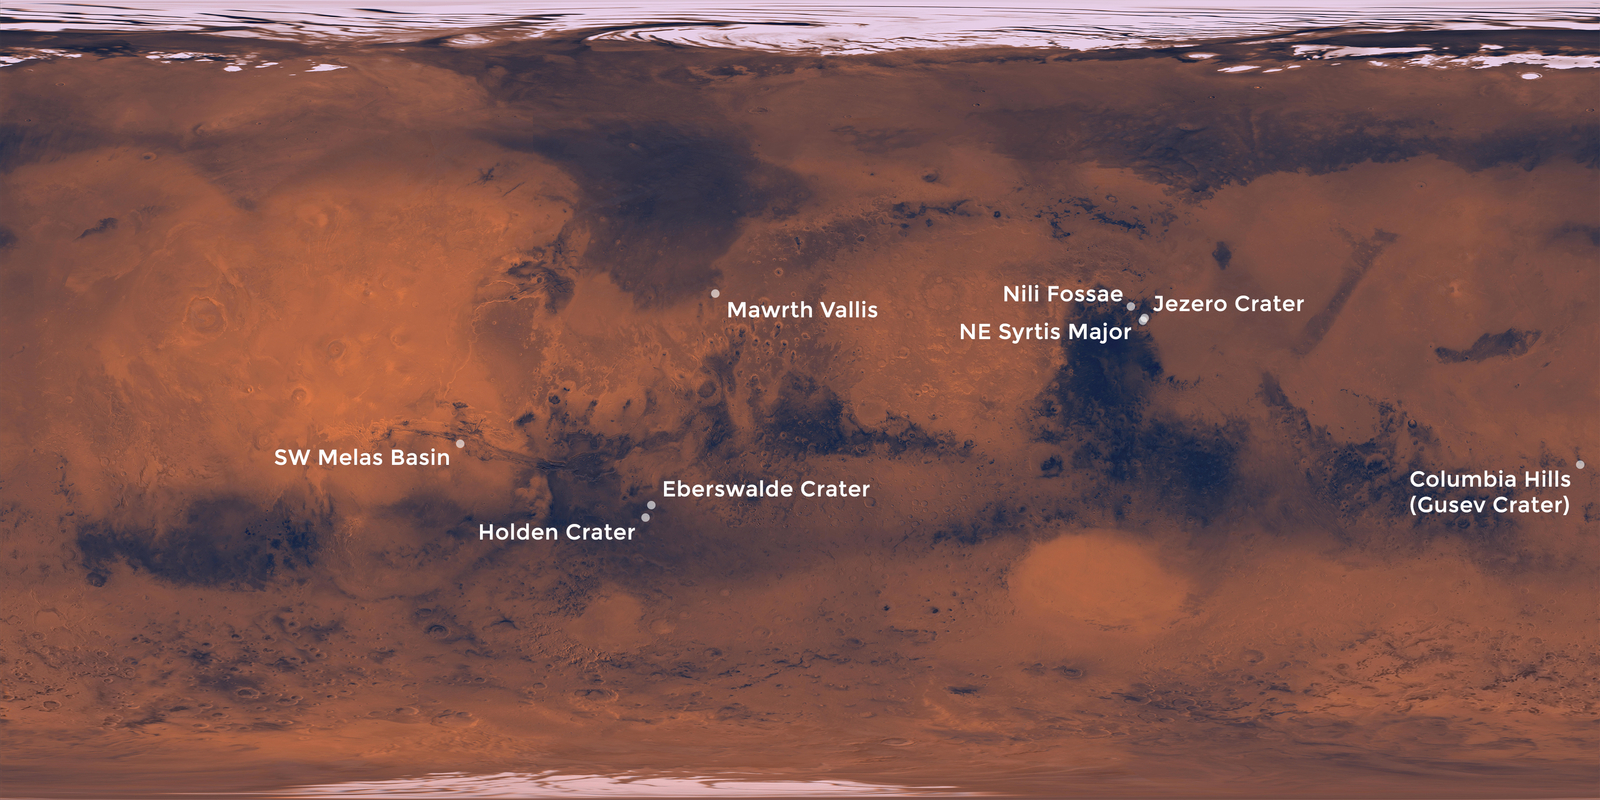 Landing Sites Under Consideration for the Mars 2020 Rover